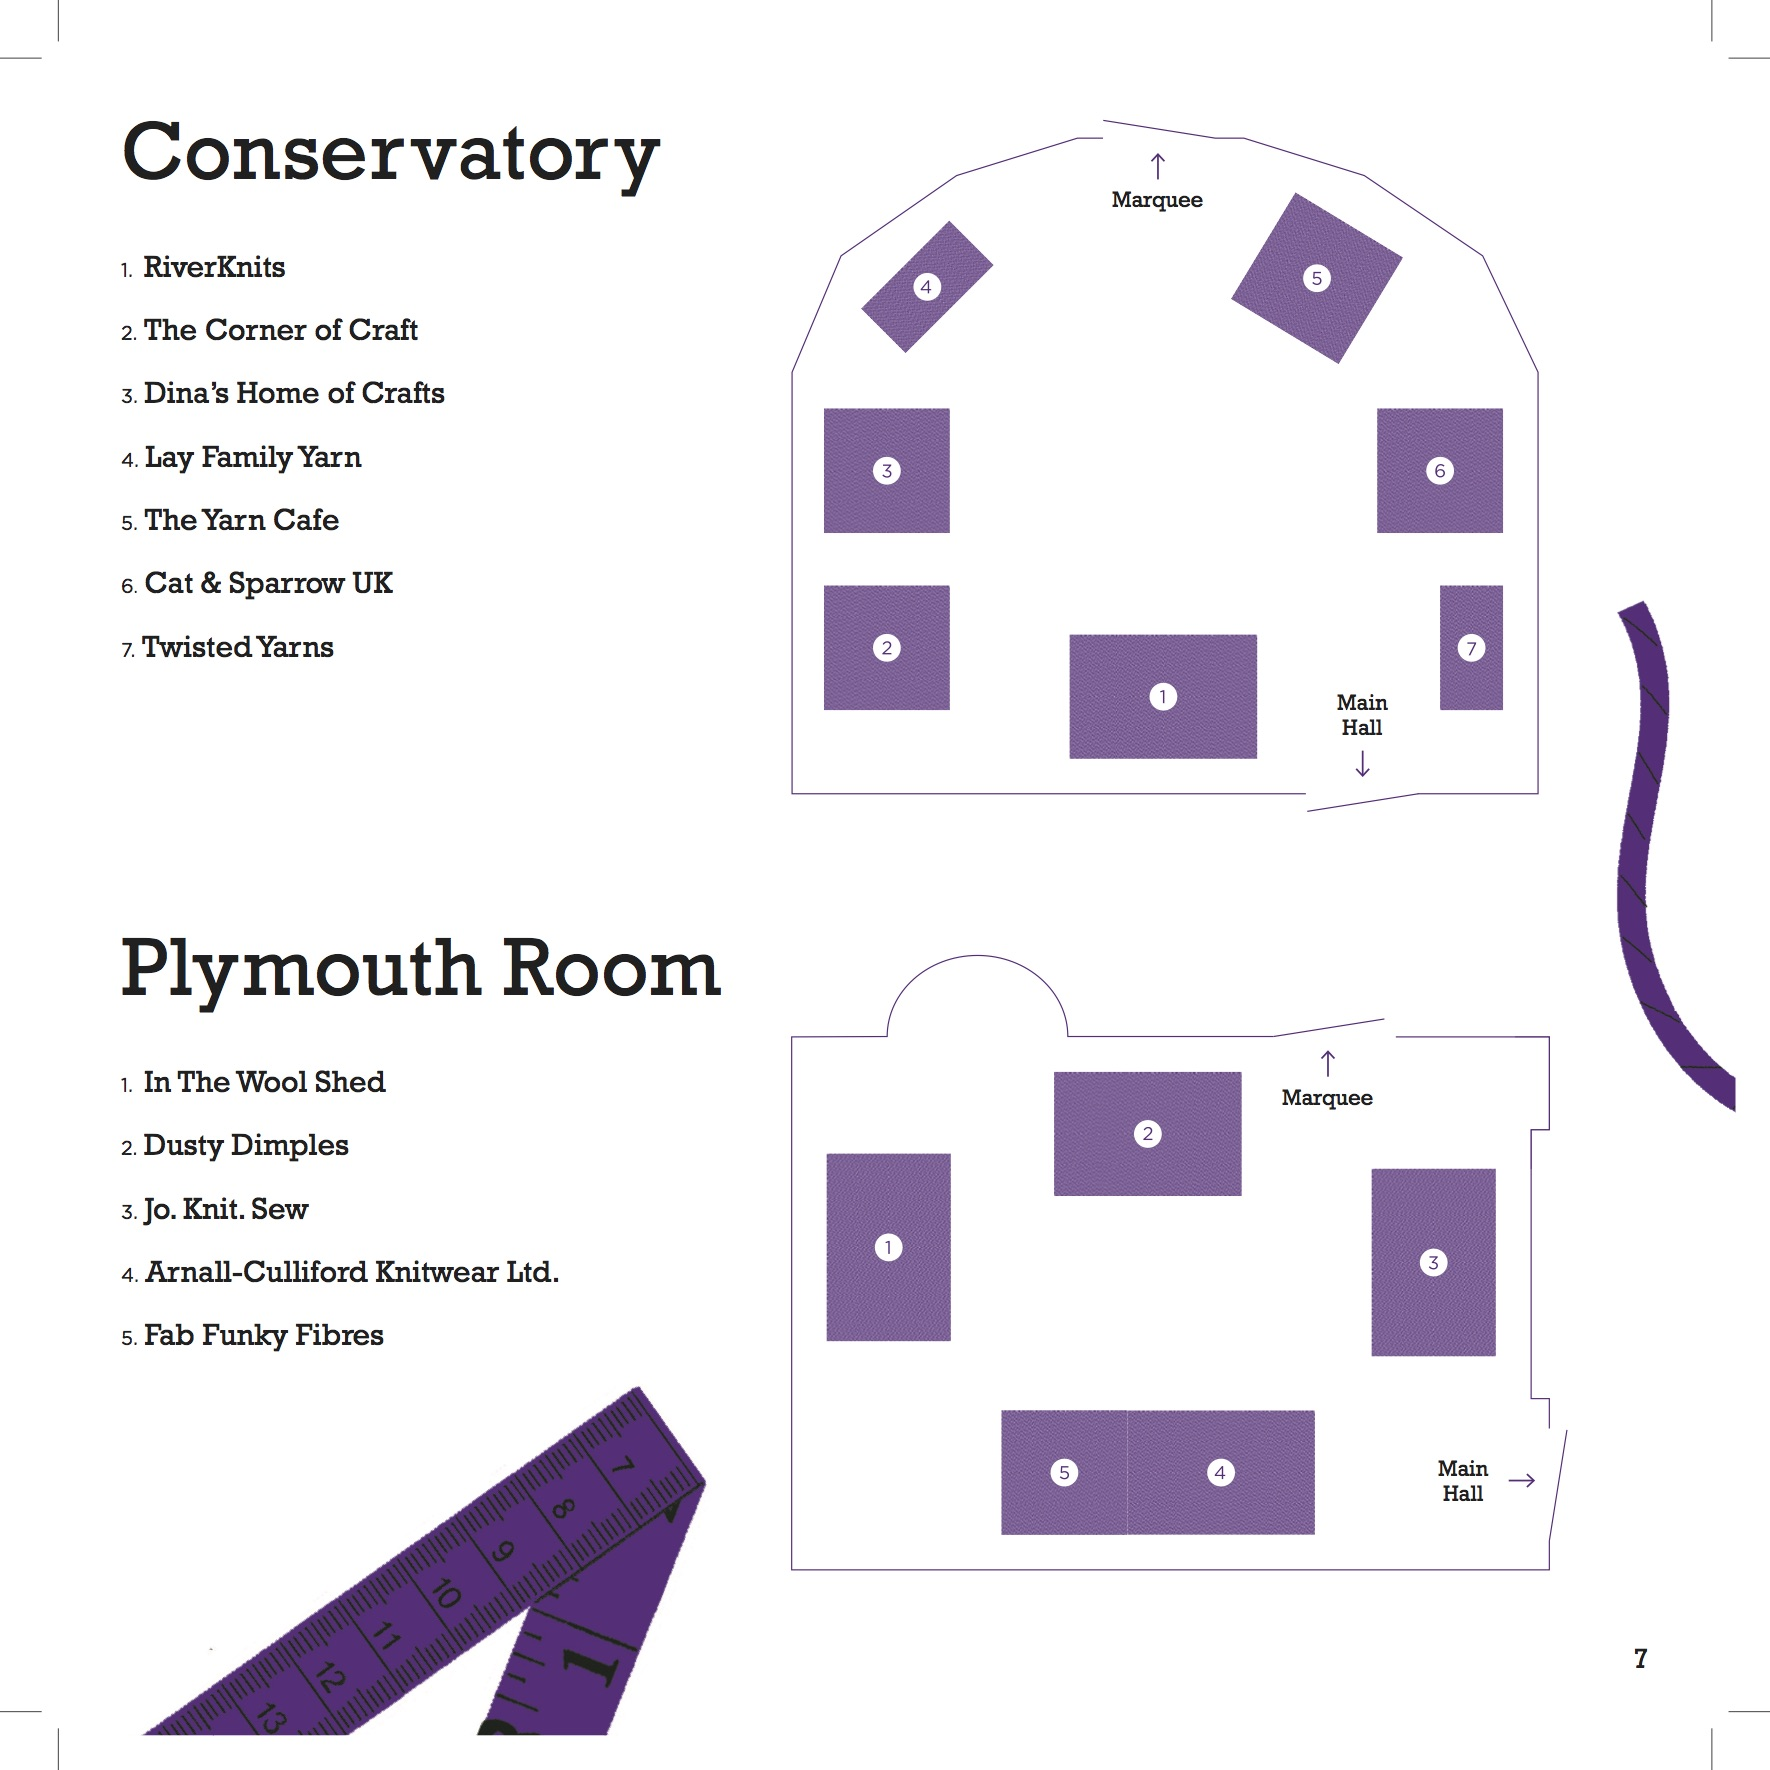 conservatoryplymouth